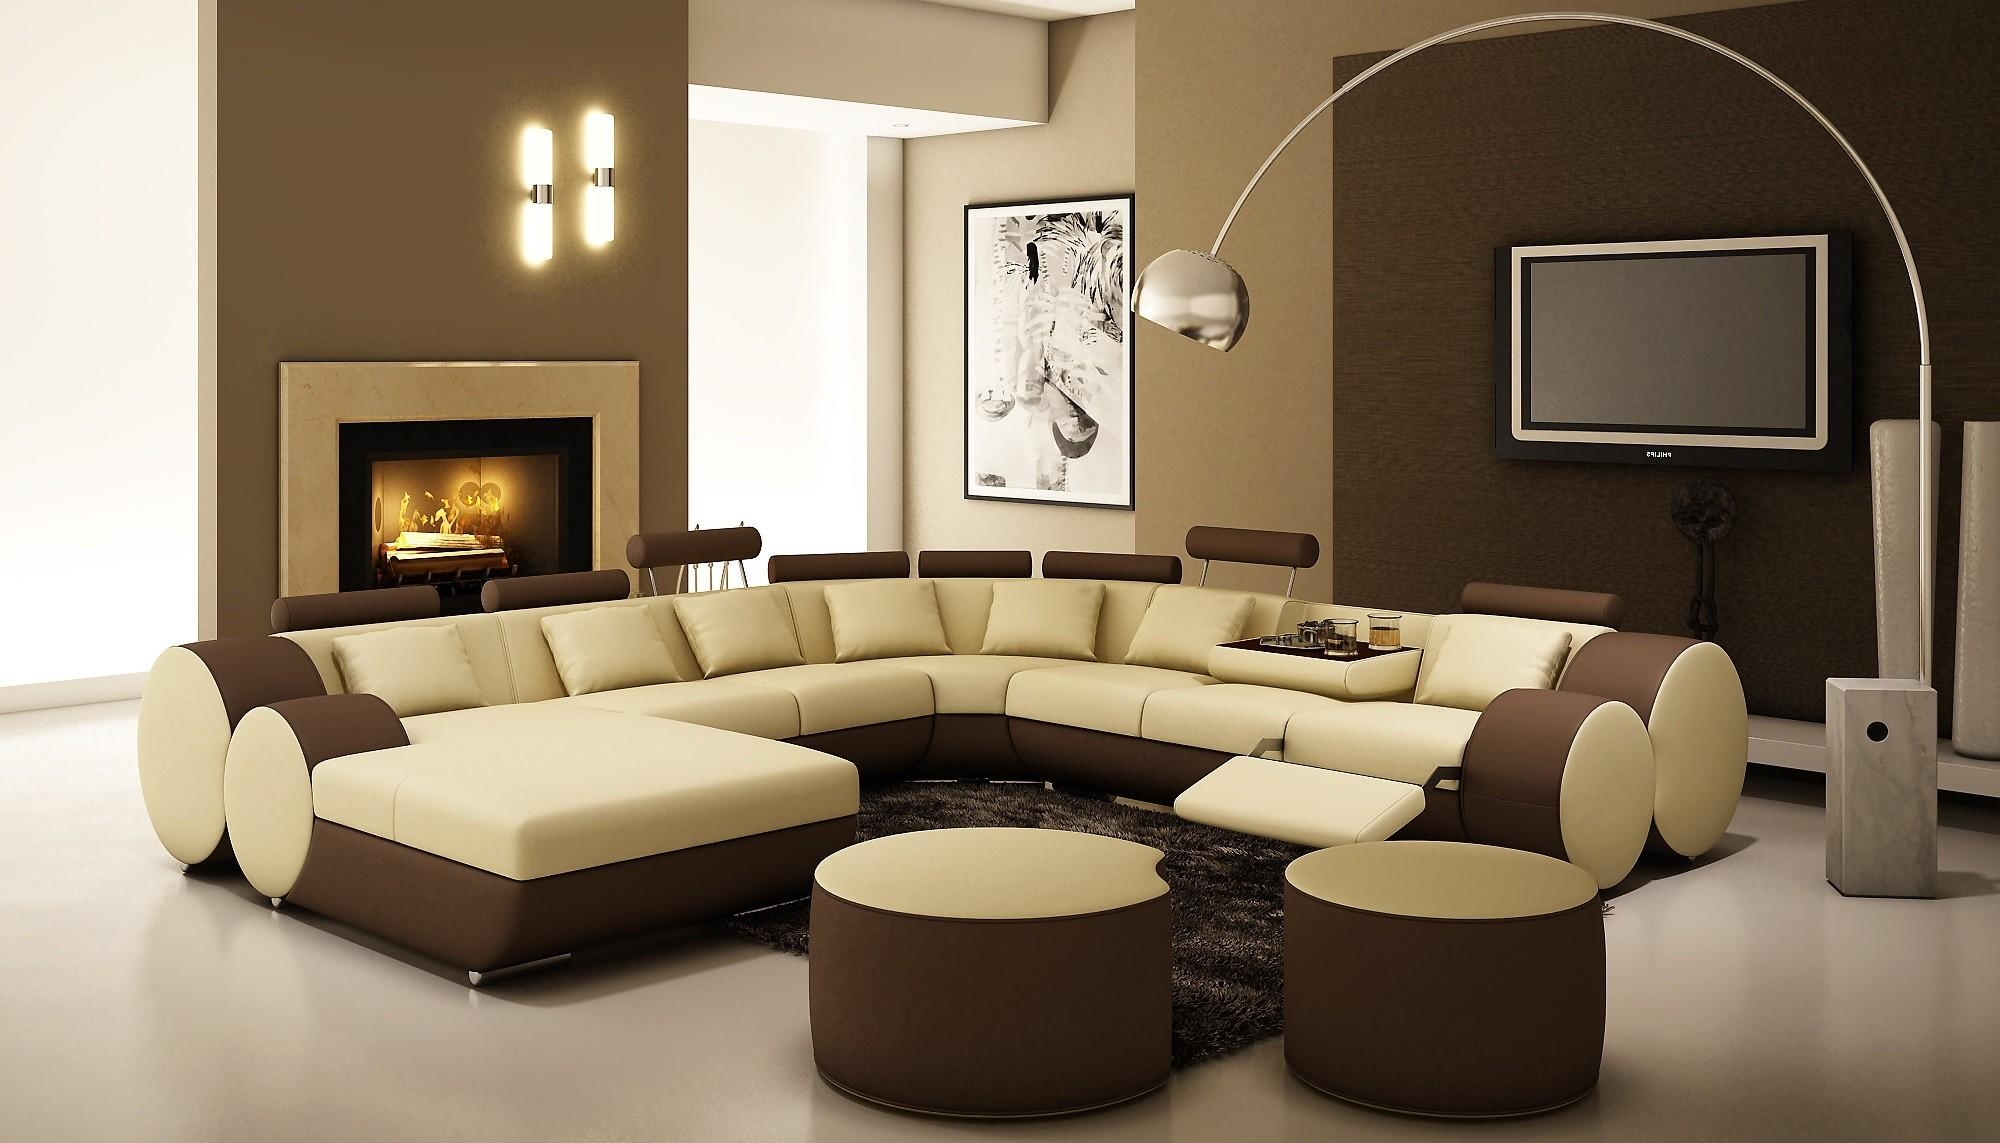 Featured Photo of Floor Lamp For Sectional Couch